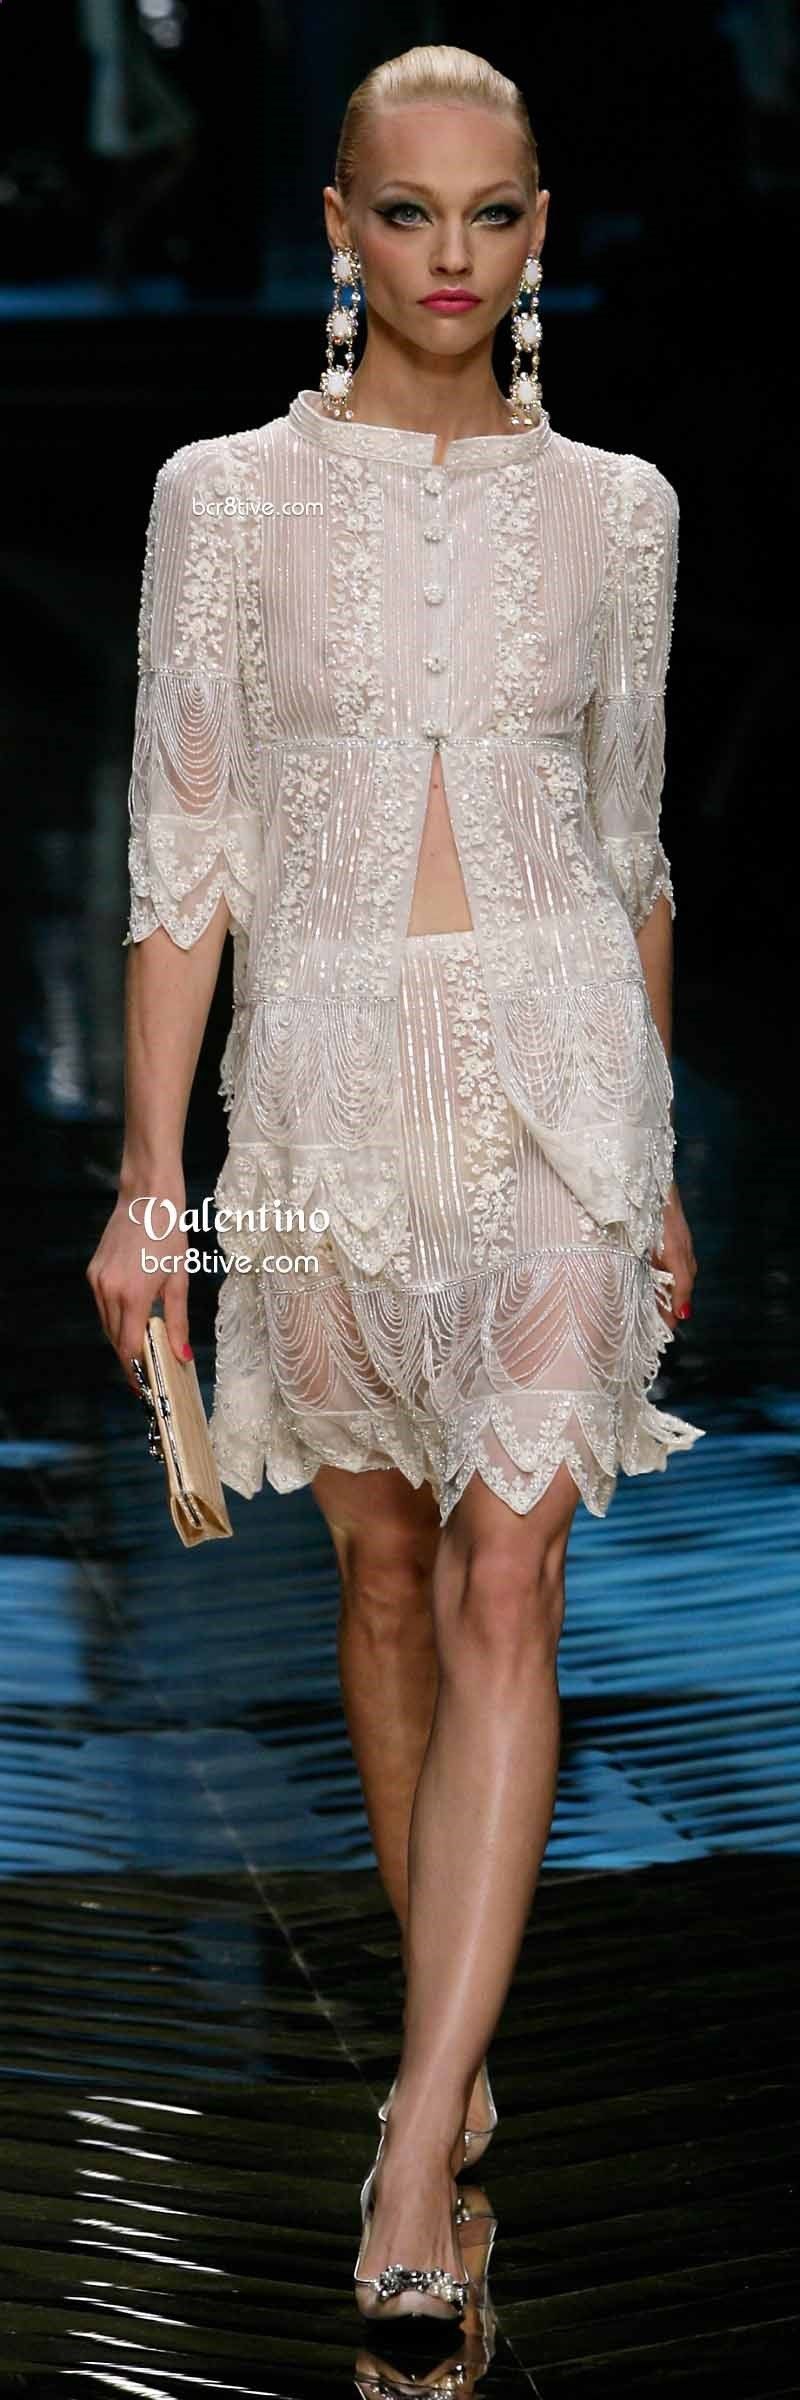 Valentino Exquisite White Lace Evening Dress I Love This And Wish